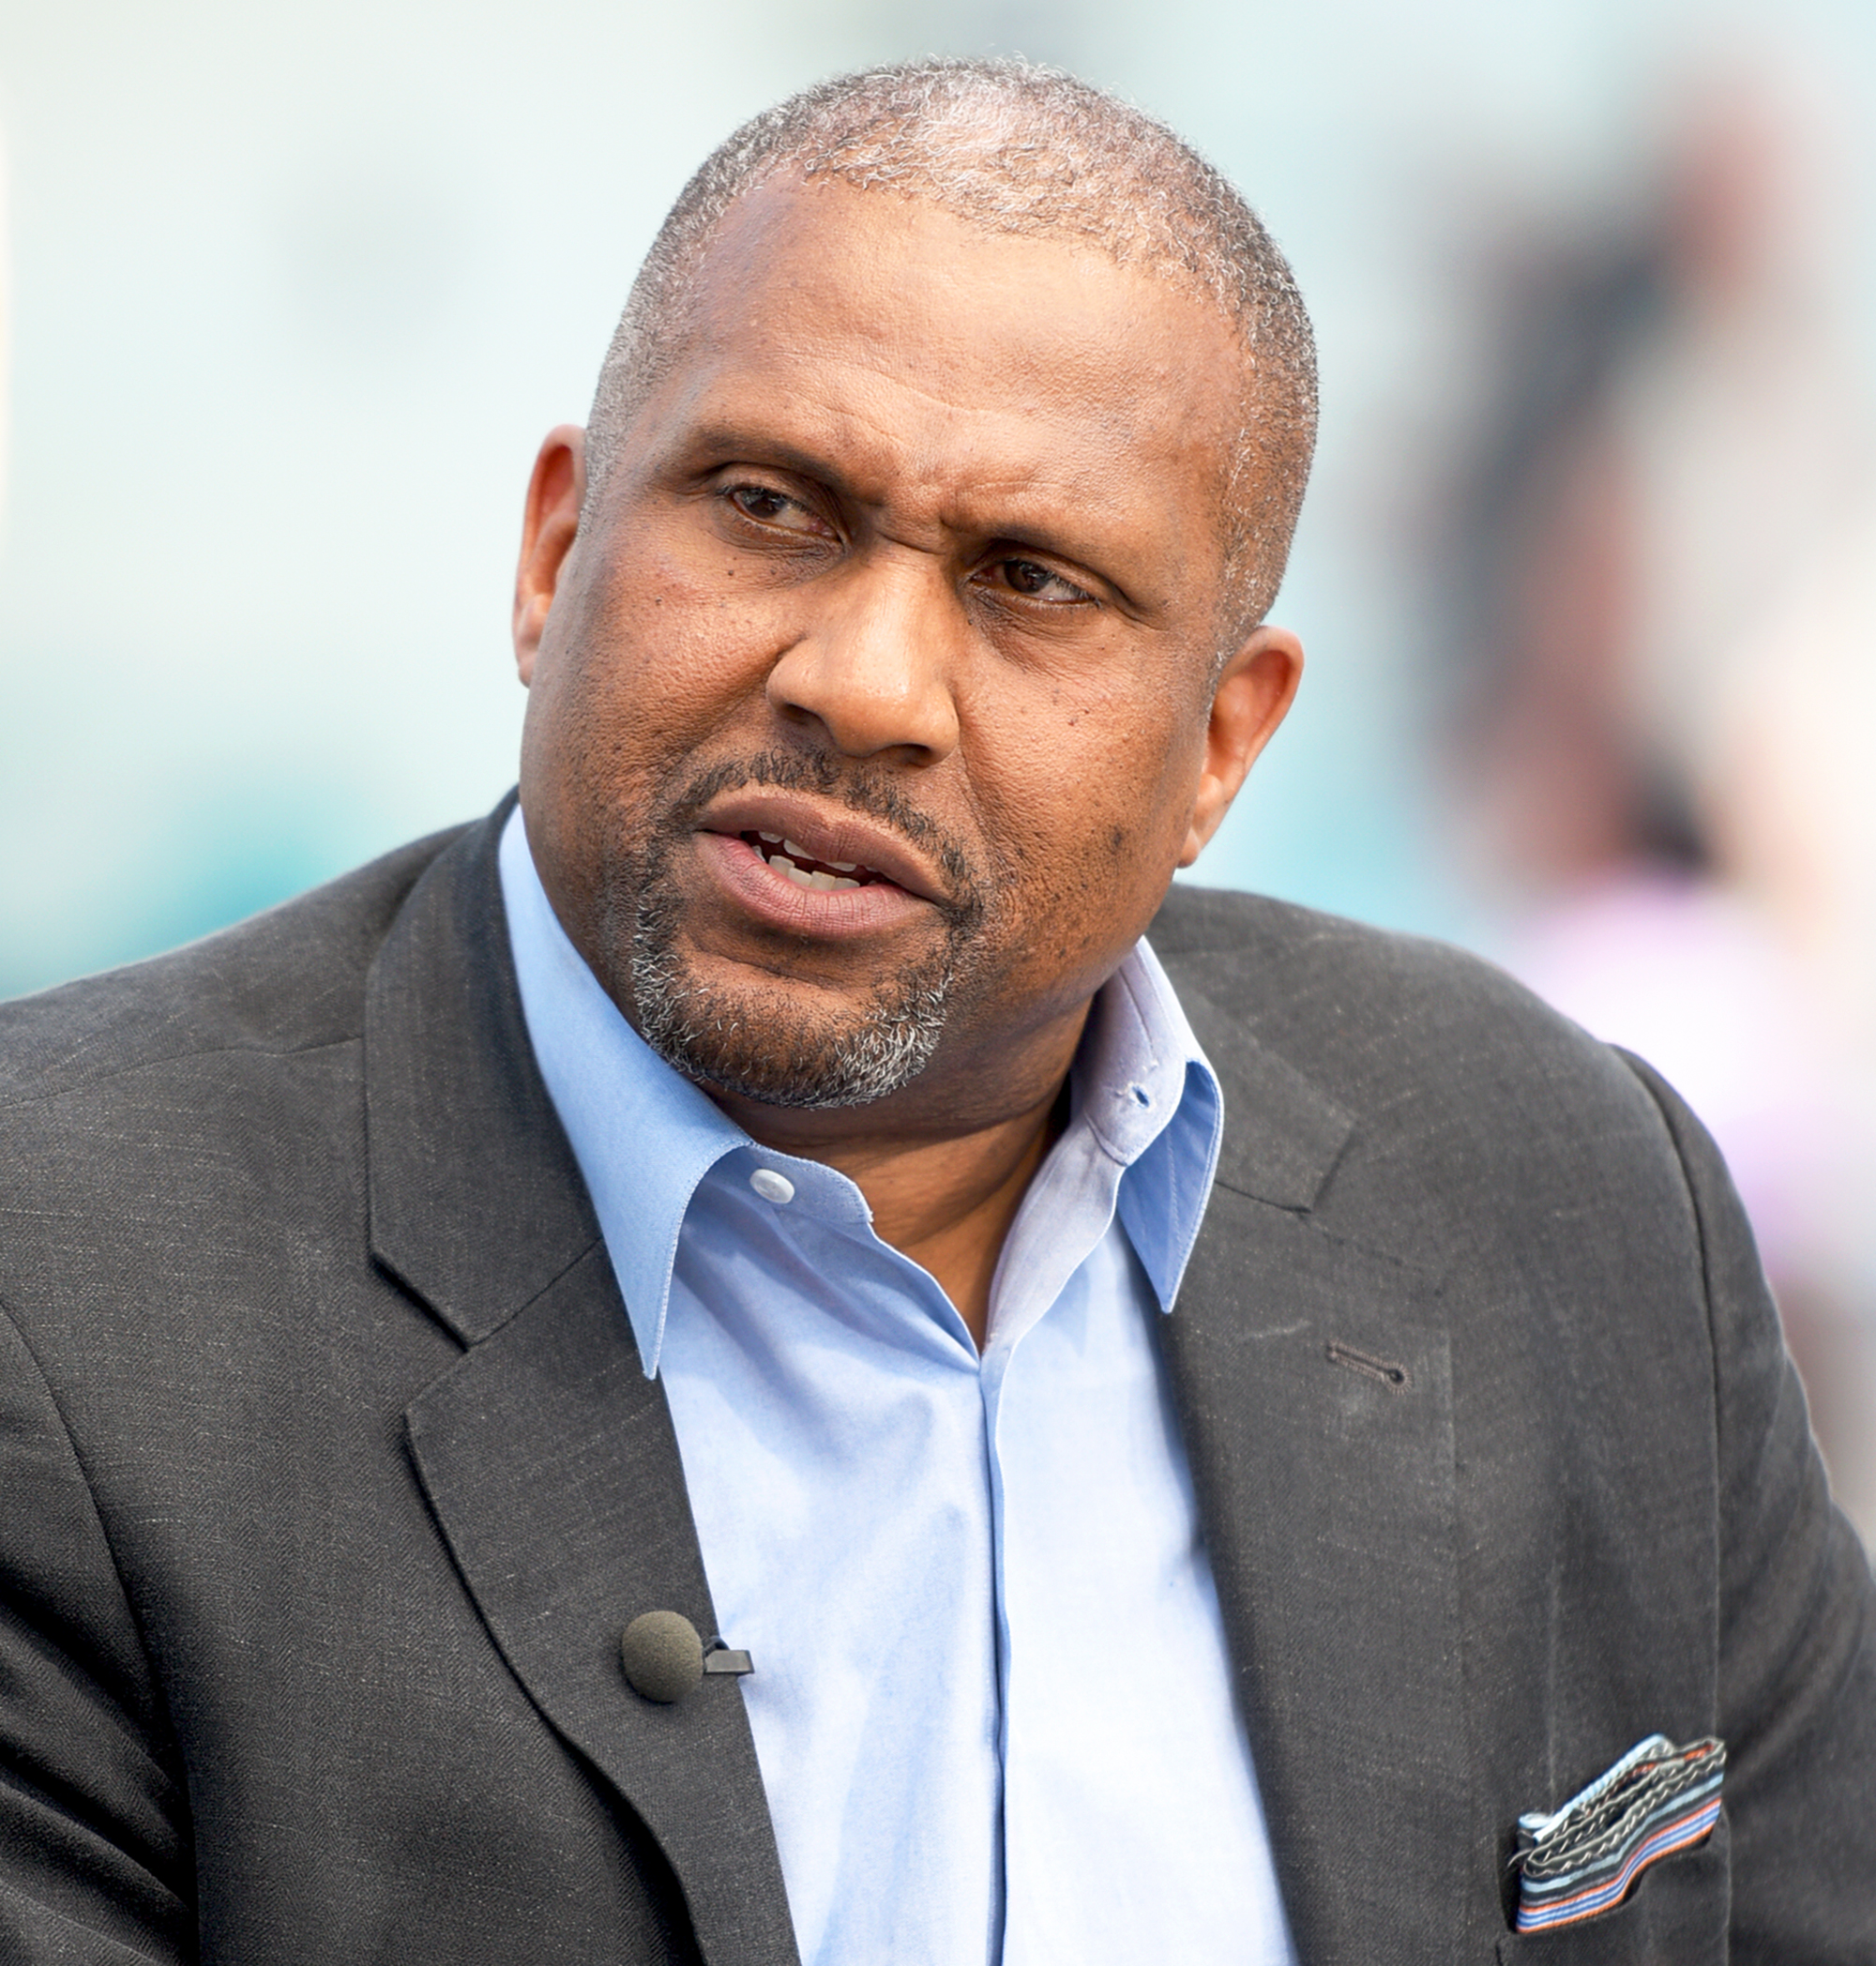 Tavis Smiley Sues PBS for Breach of Conduct